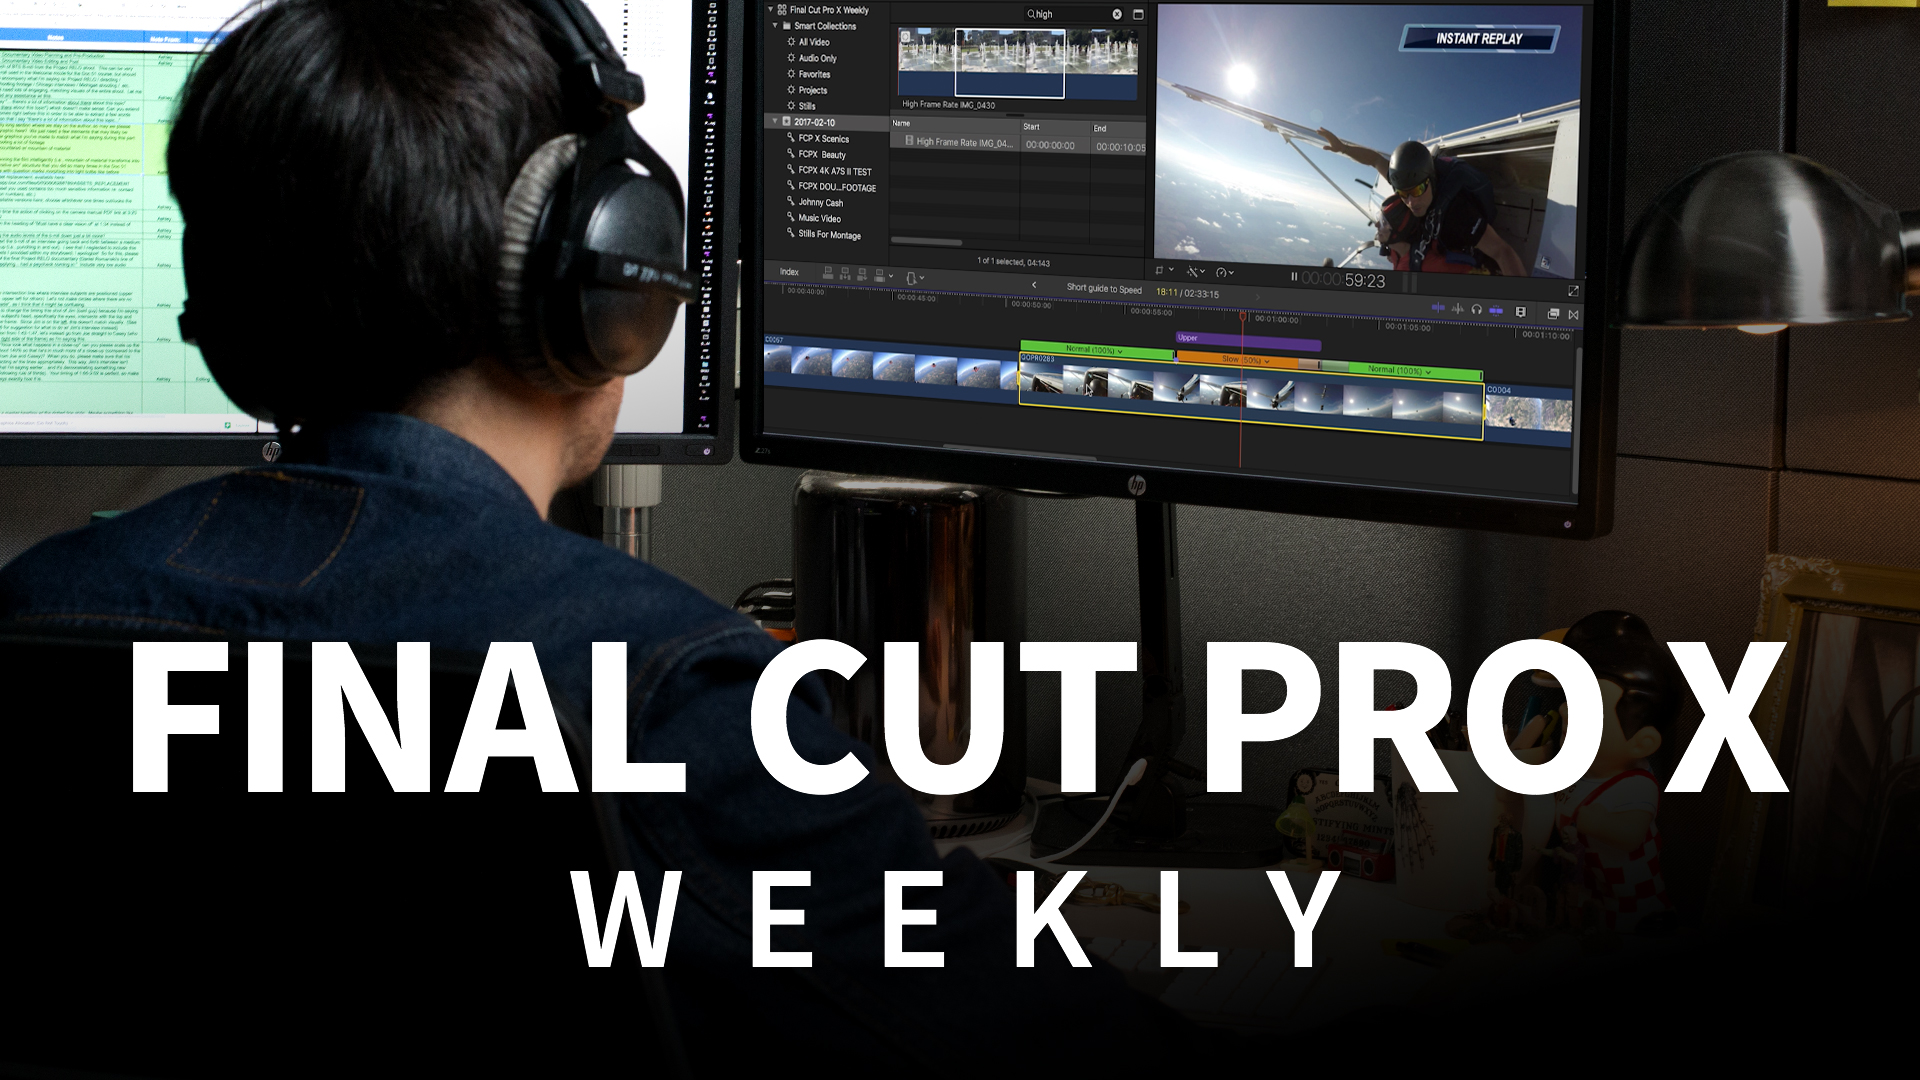 Final Cut Pro X Weekly